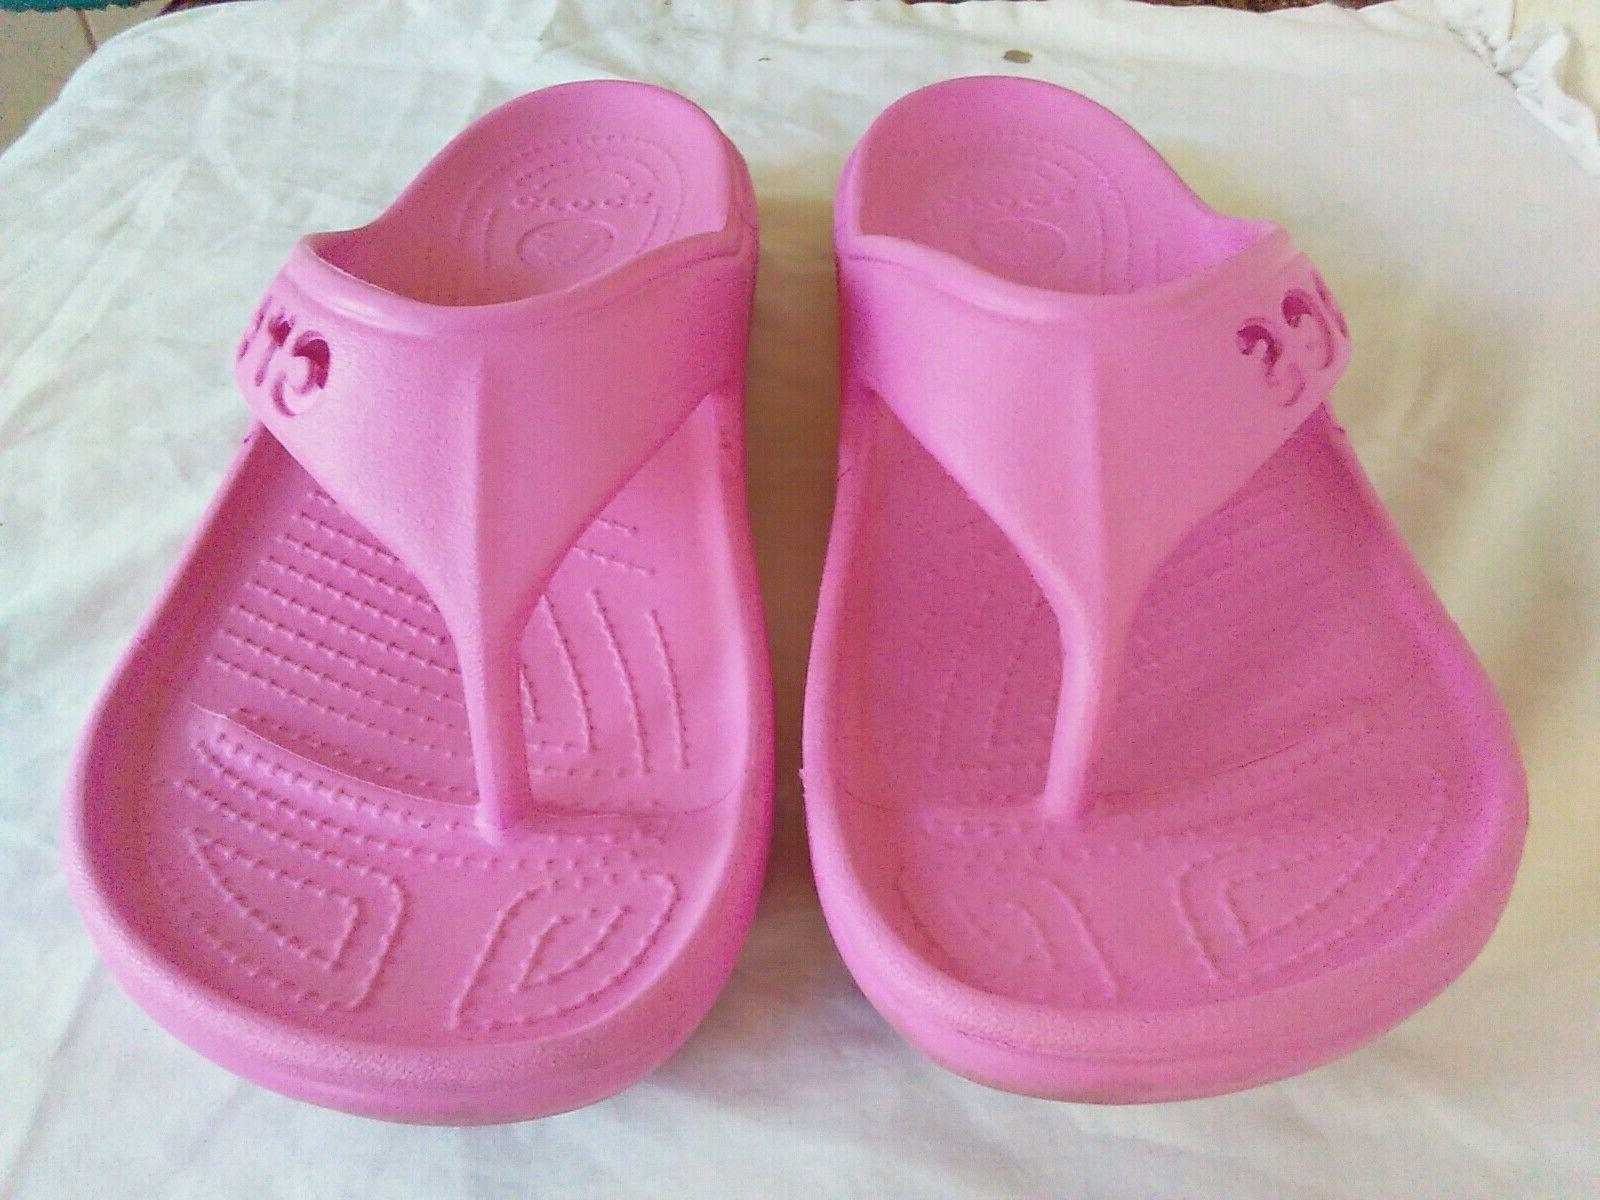 Women's Crocs Baya Flop Pink Or Water Shoes 9. M7